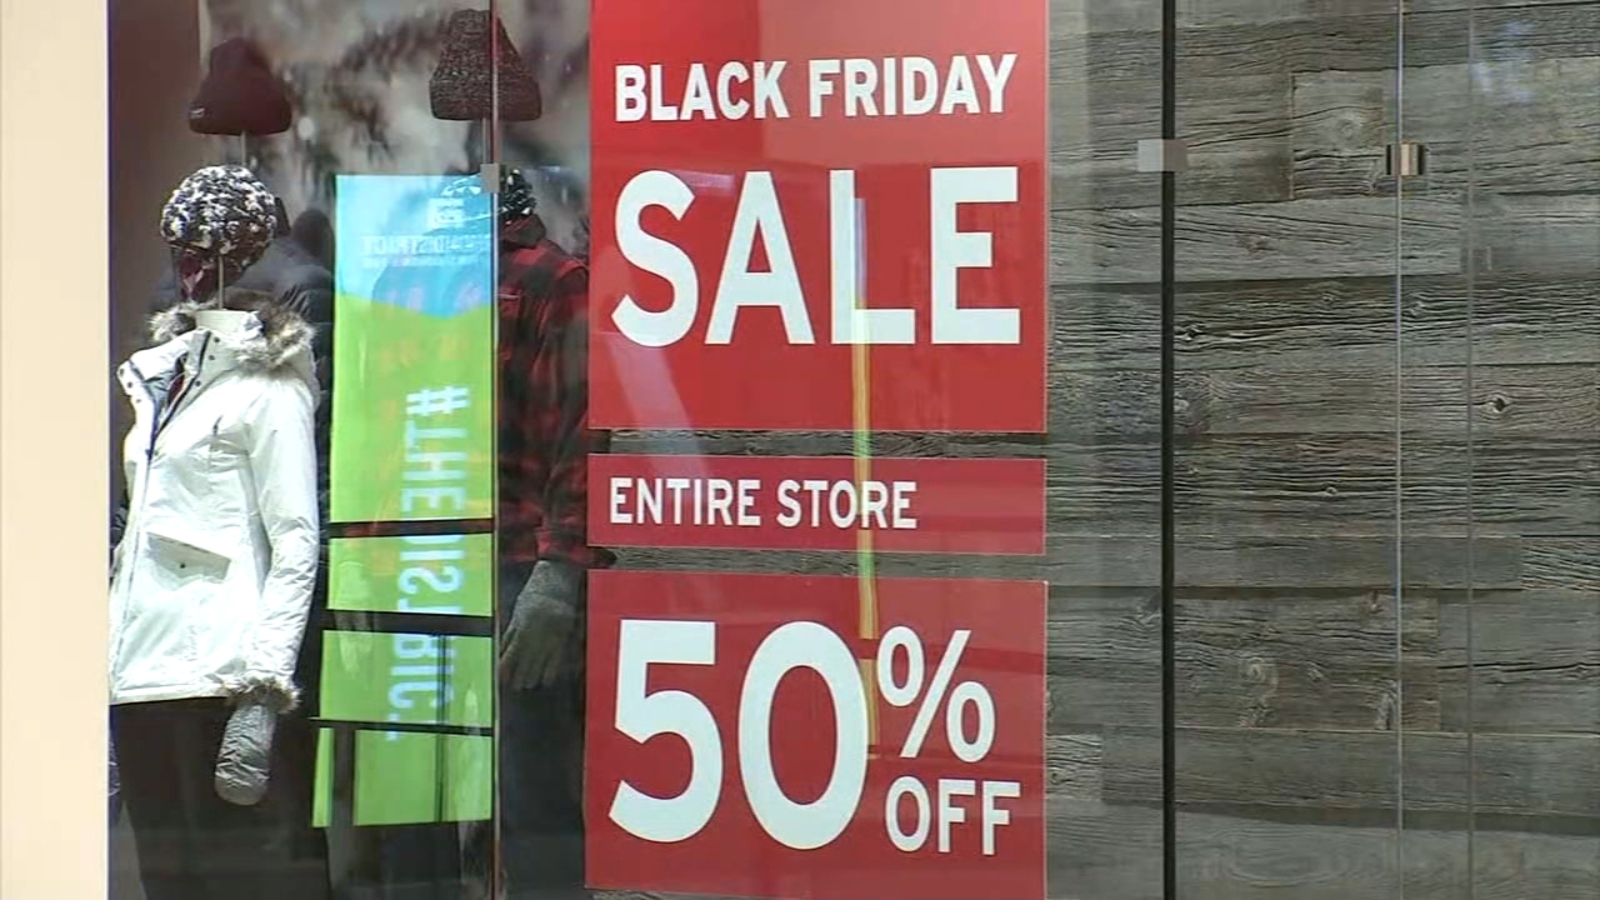 Black Friday 2020 Get Ready For Changes This Year Thanks To Covid 19 6abc Philadelphia